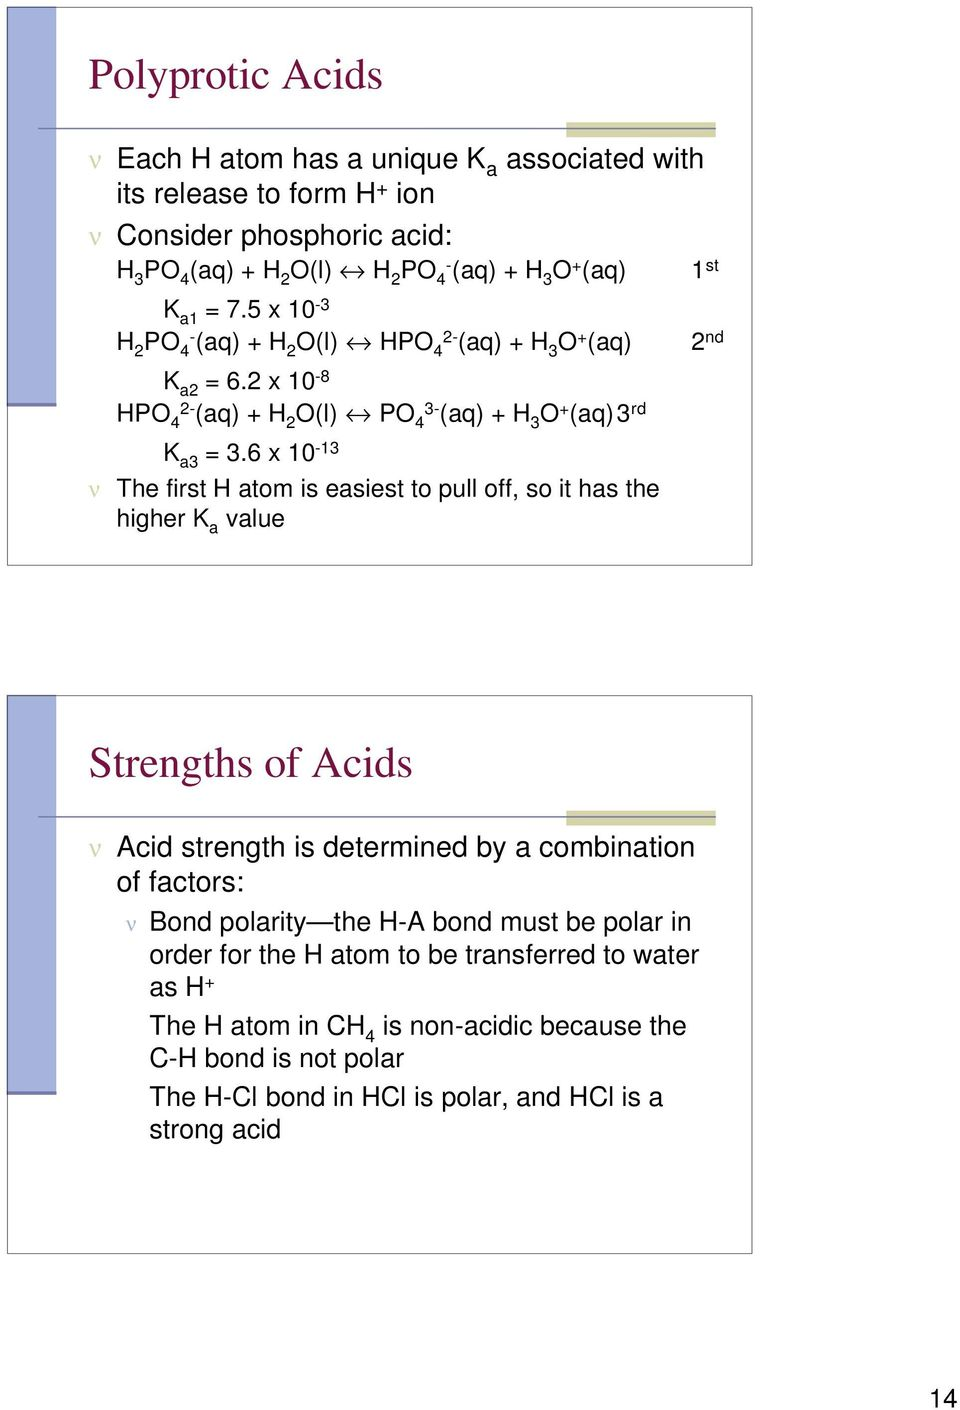 6 x 10-13 ν The first H atom is easiest to pull off, so it has the higher K a value Strengths of Acids ν Acid strength is determined by a combination of factors: ν Bond polarity the